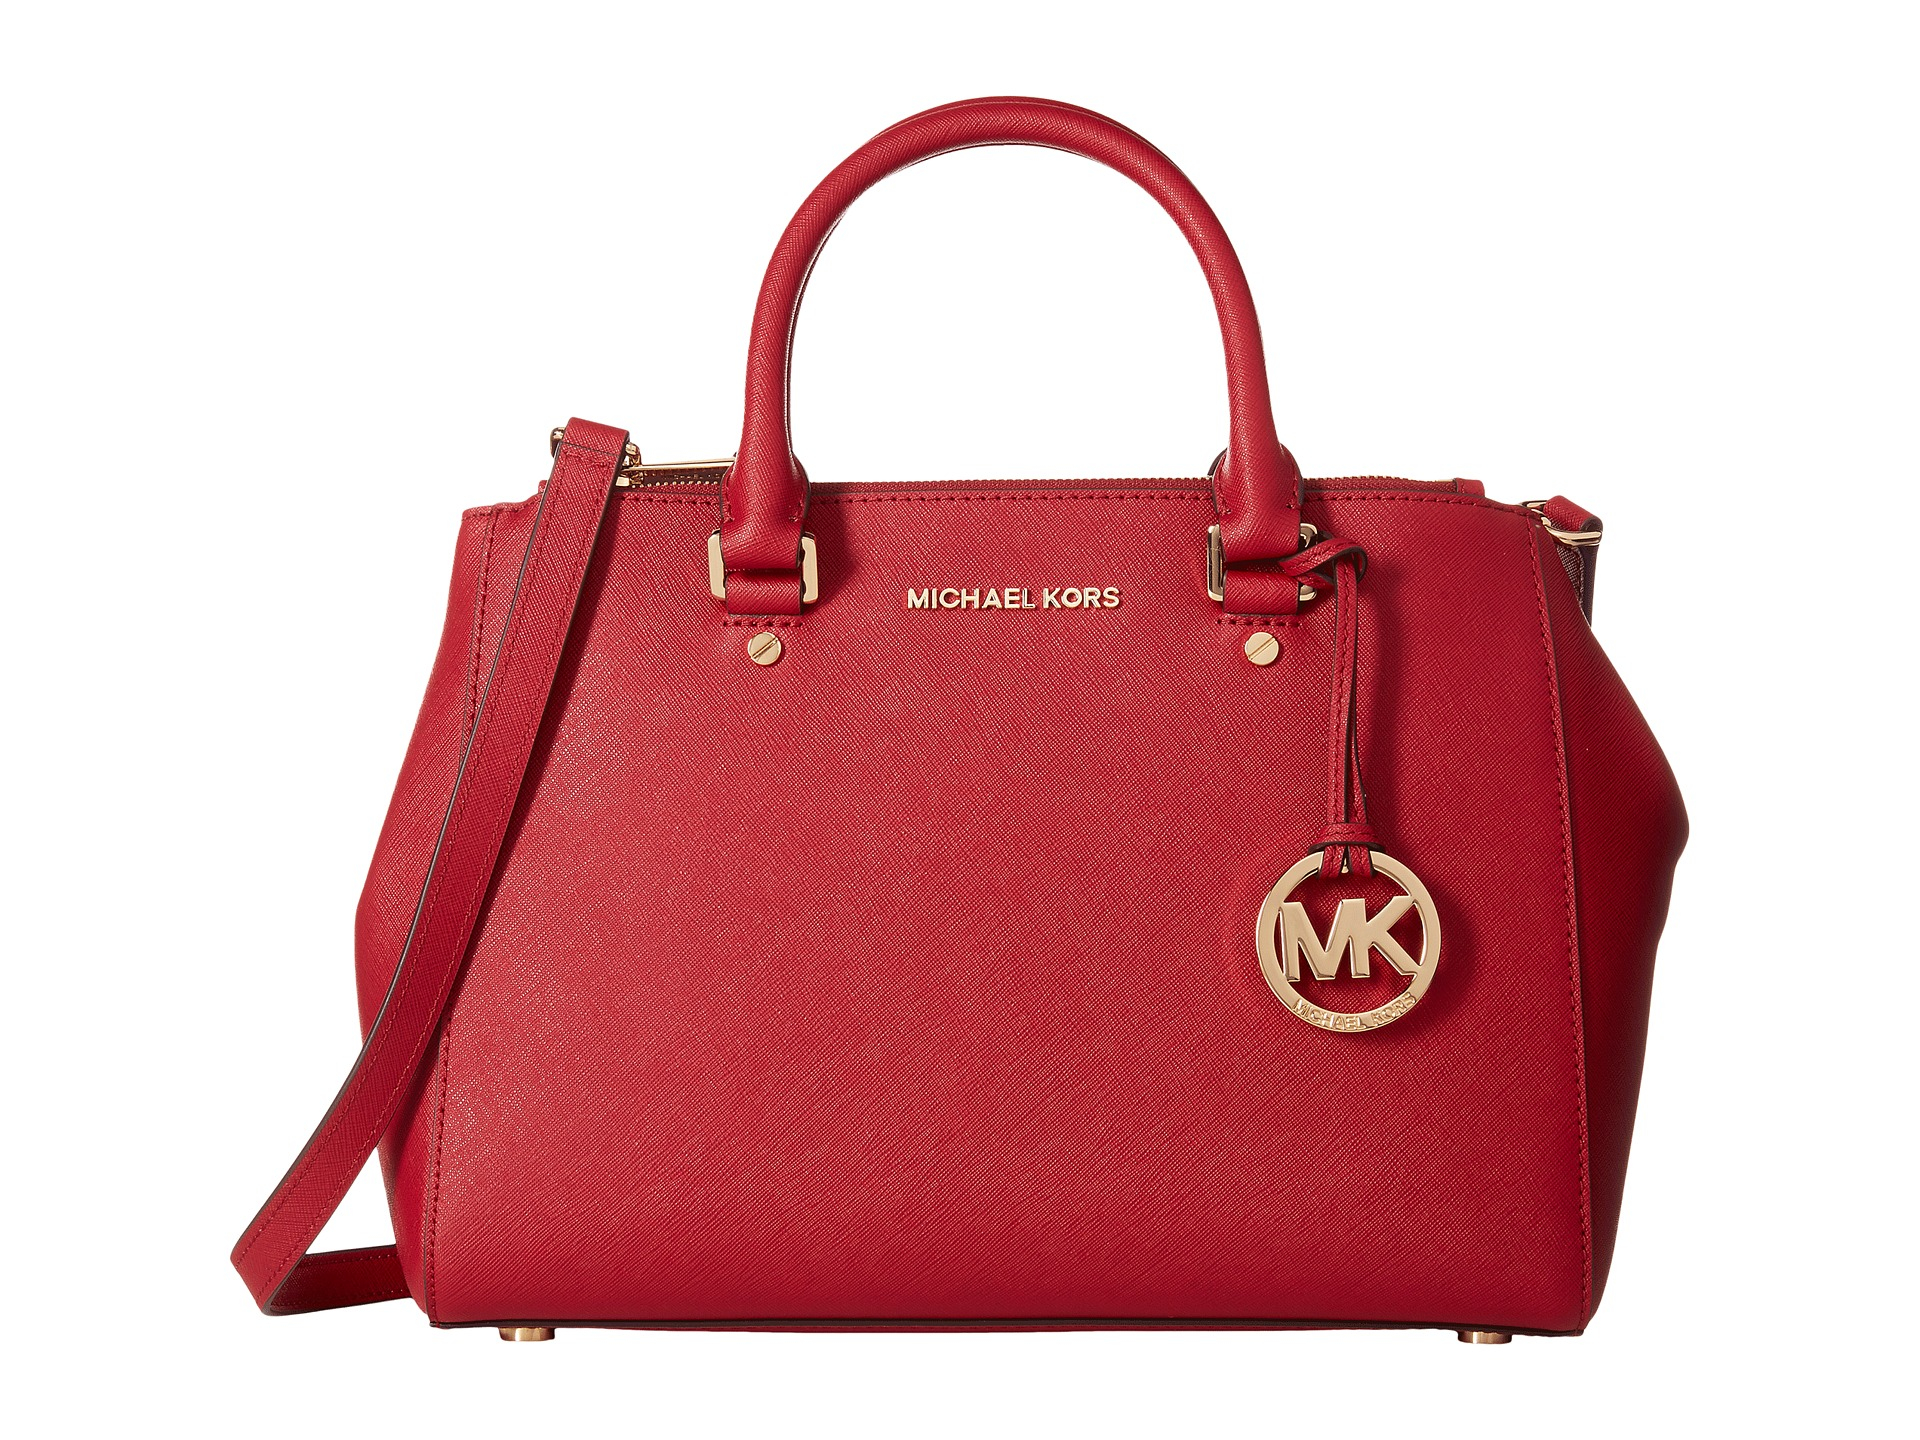 d668f4648b0c ... Leather Cross Michael michael kors Sutton Medium Satchel in Red Lyst  Michael Kors Bags ...